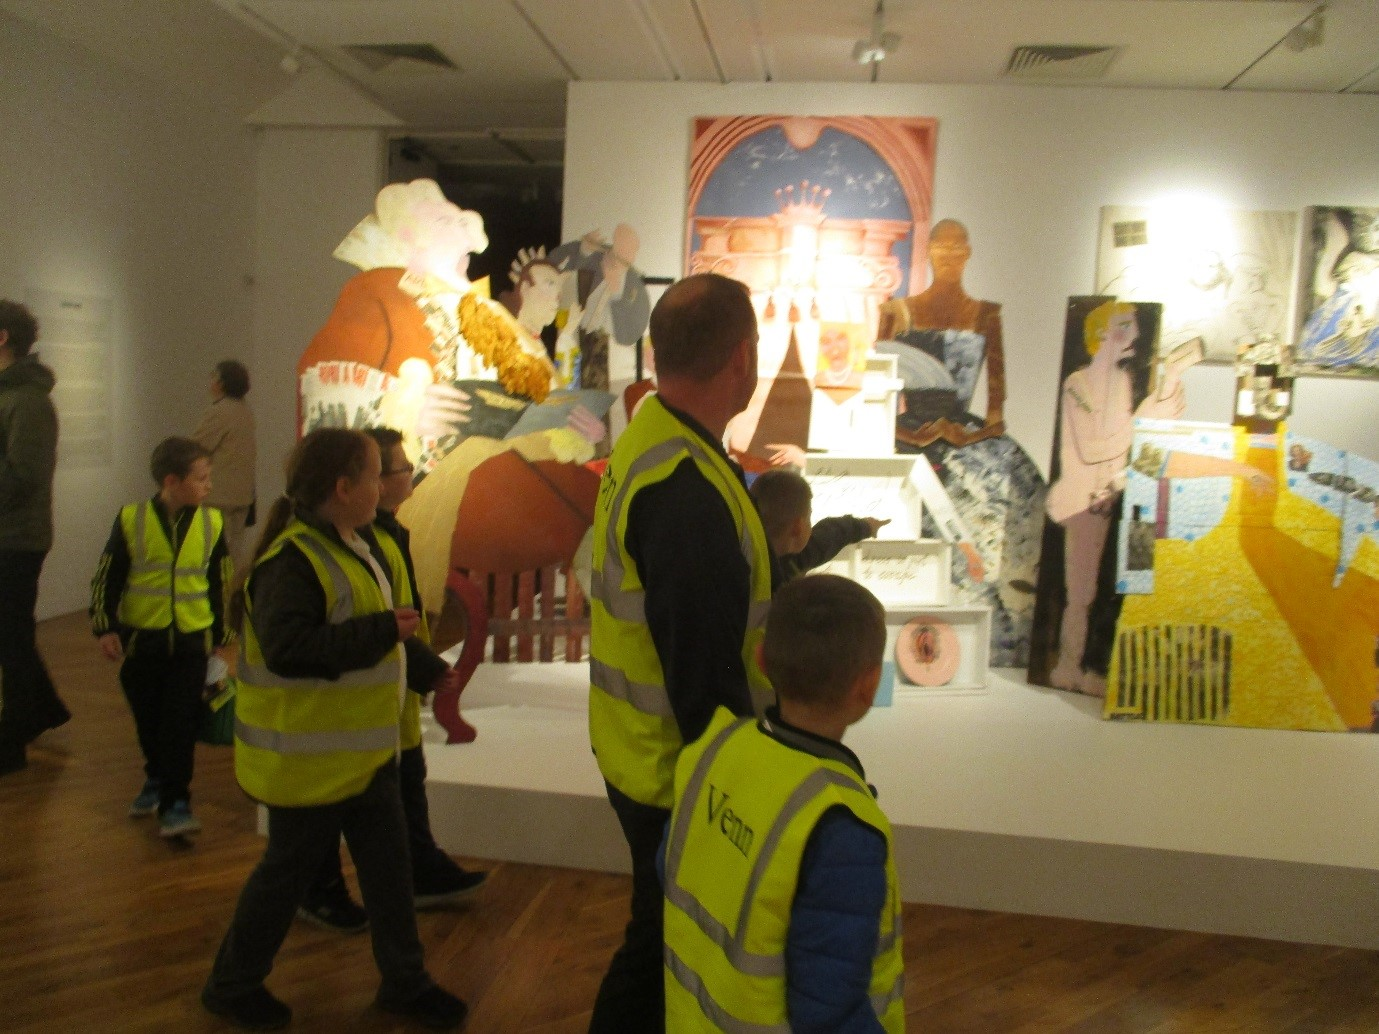 Pupils from Bridgeview Whitehouse on an art gallery trip